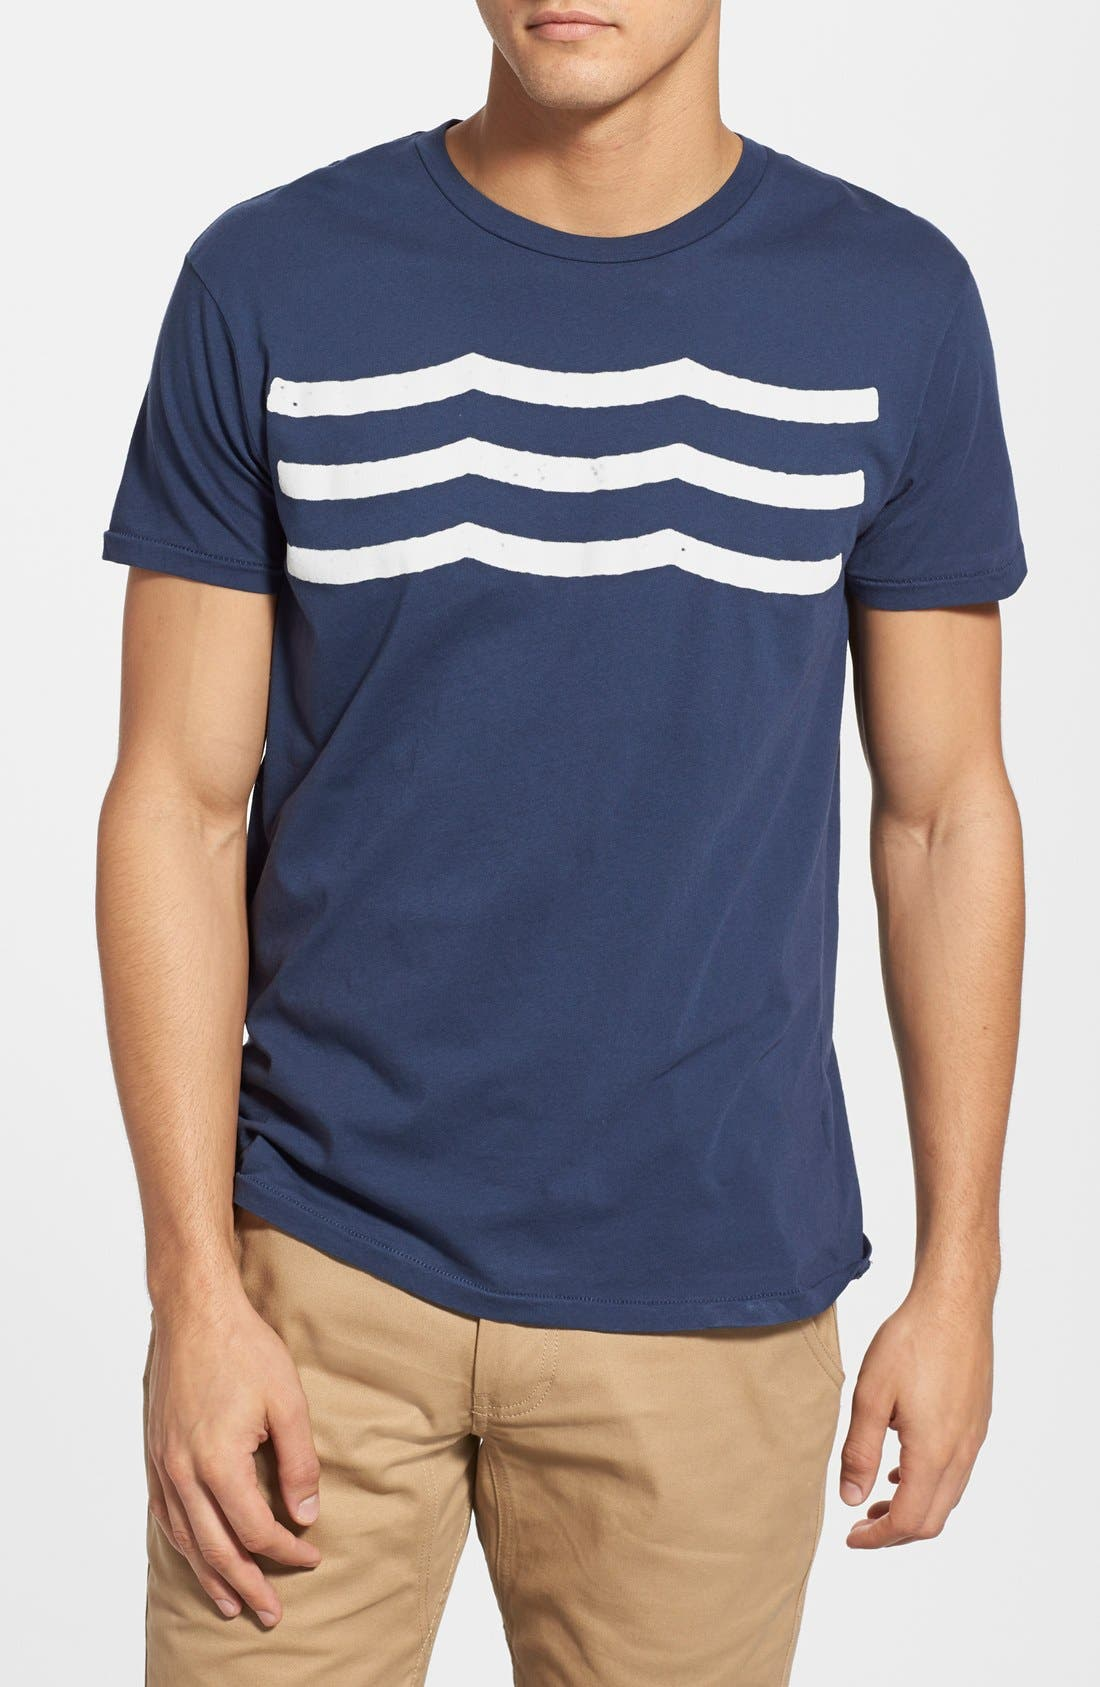 SOL ANGELES 'WAVES' GRAPHIC T-SHIRT